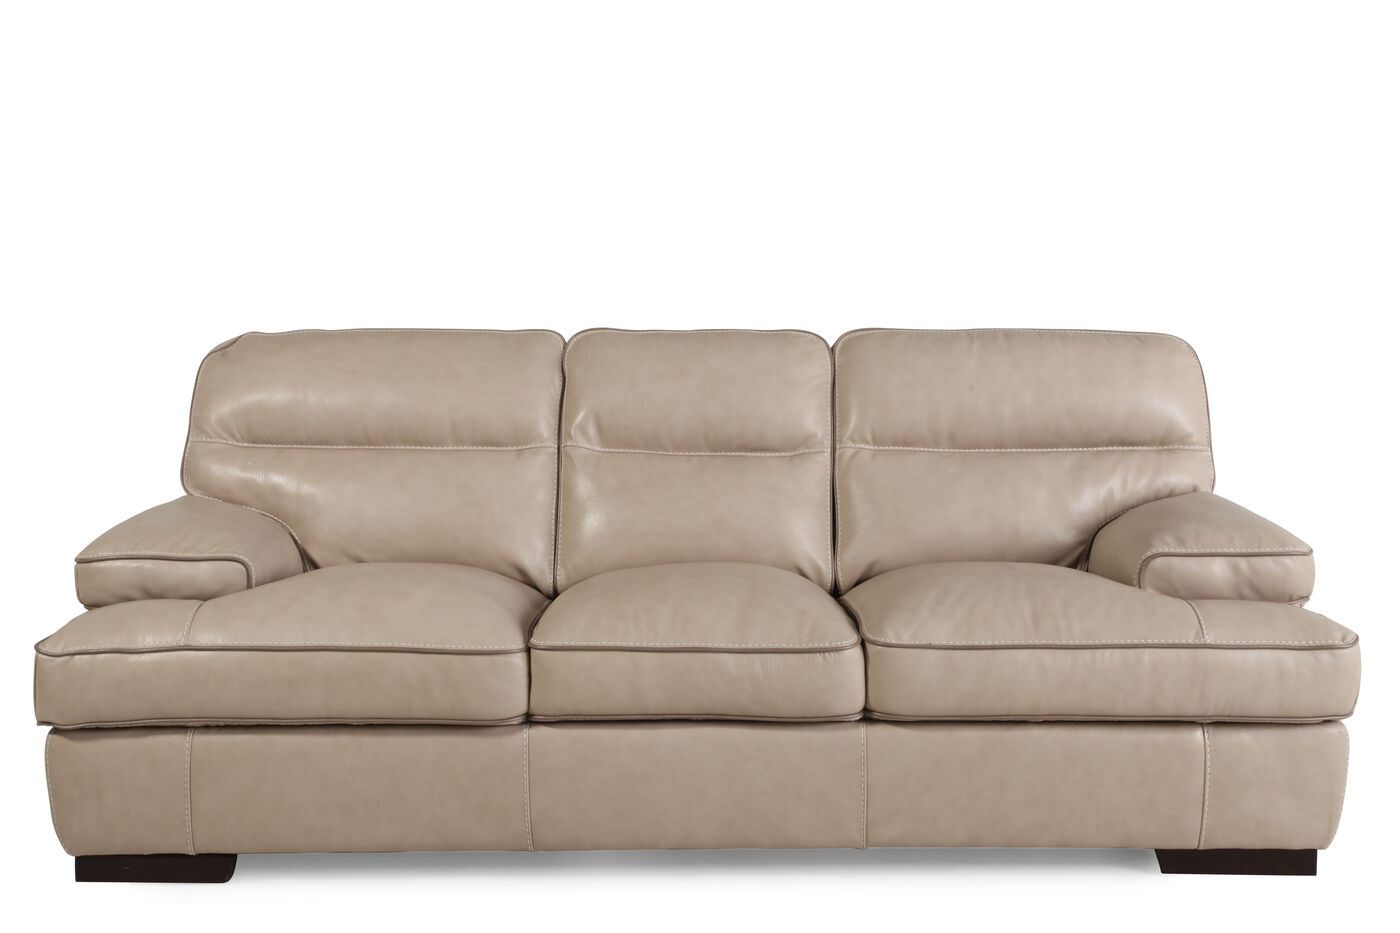 Contemporary leather 91 sofa in wheat mathis brothers for Contemporary leather furniture